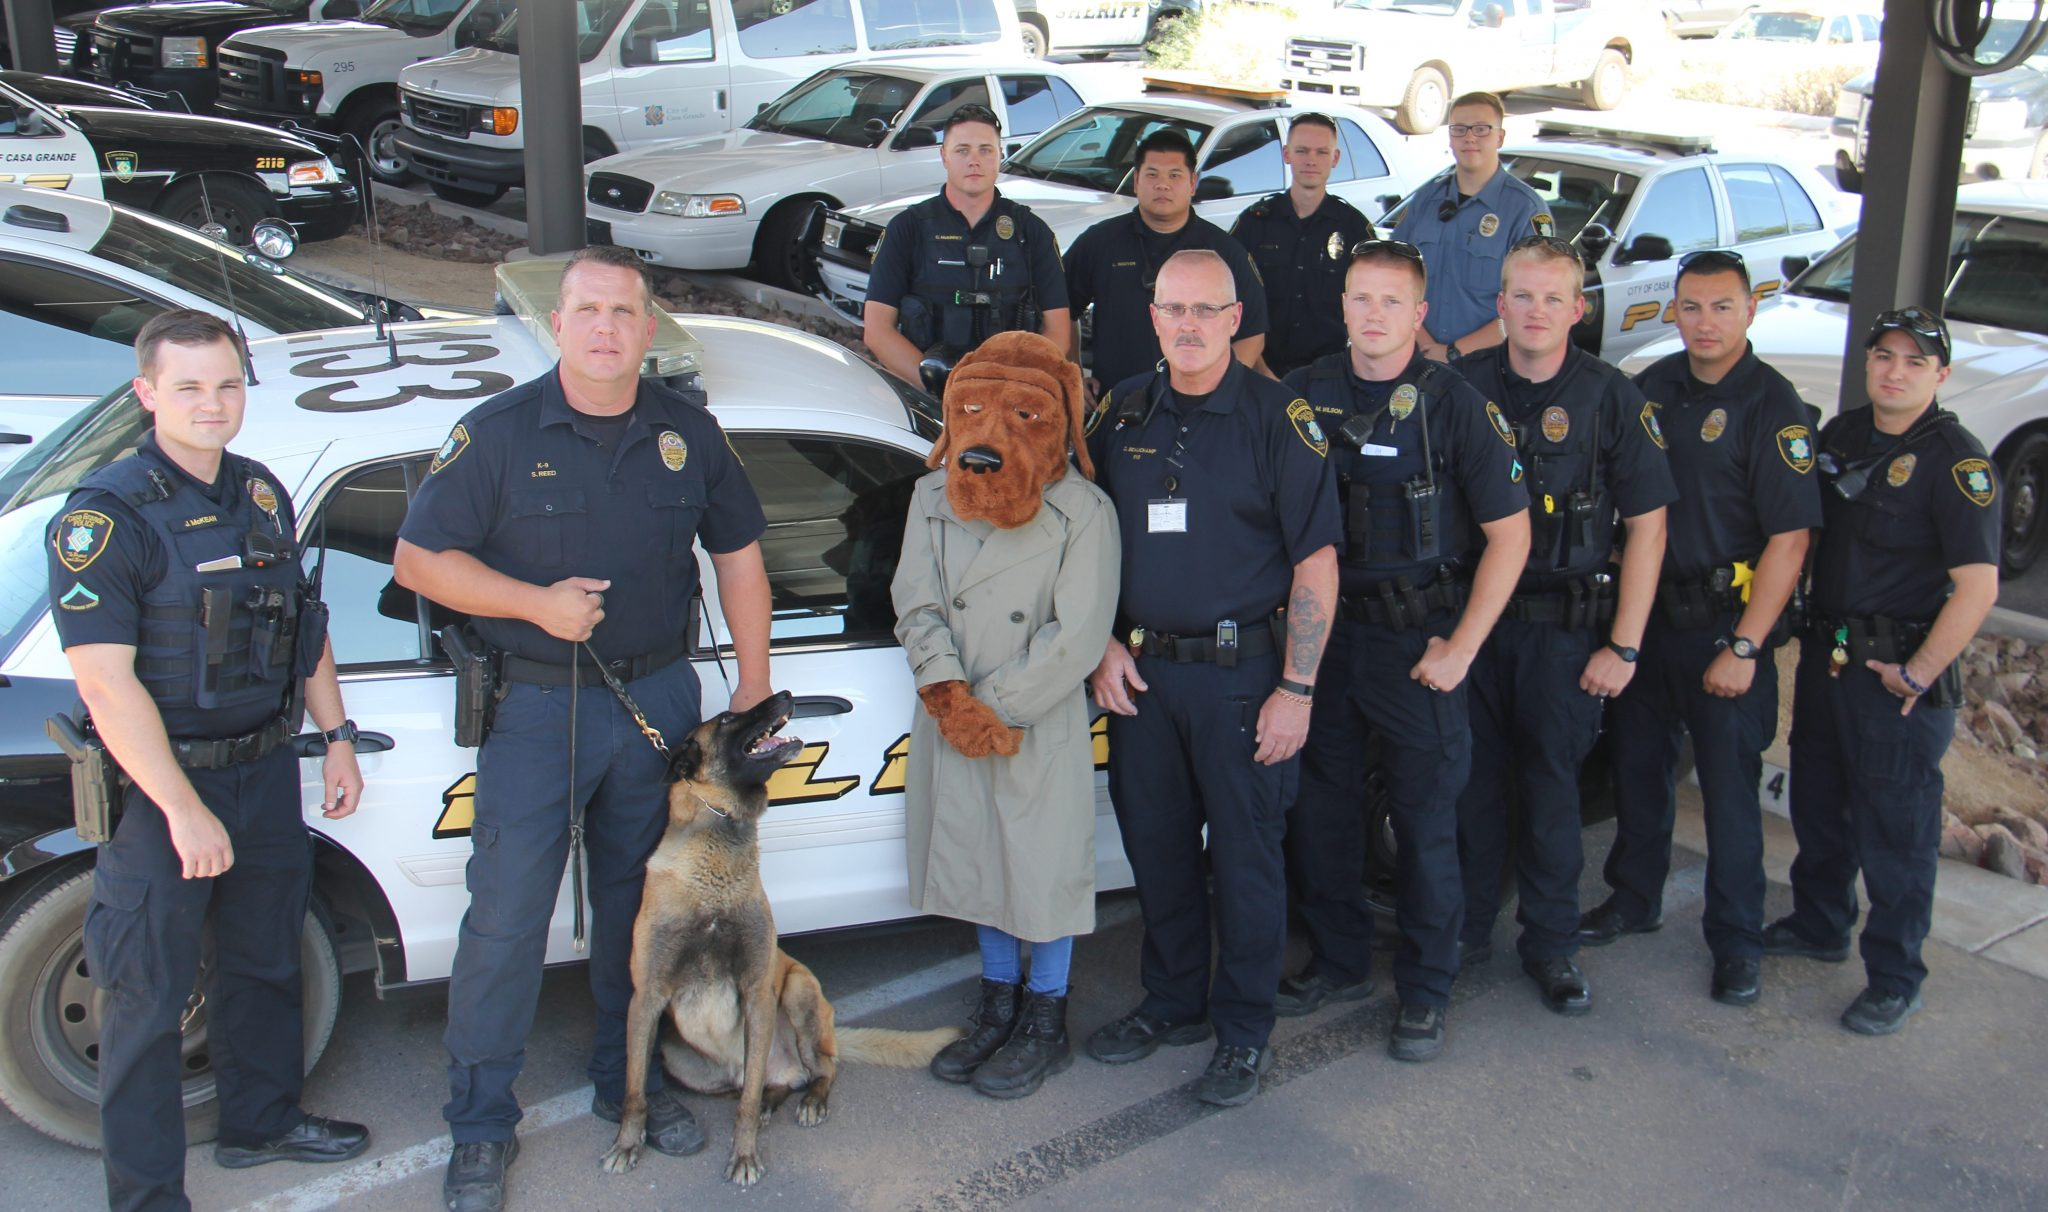 CGPD officers, dog mascot and canine posing outside of the facility.